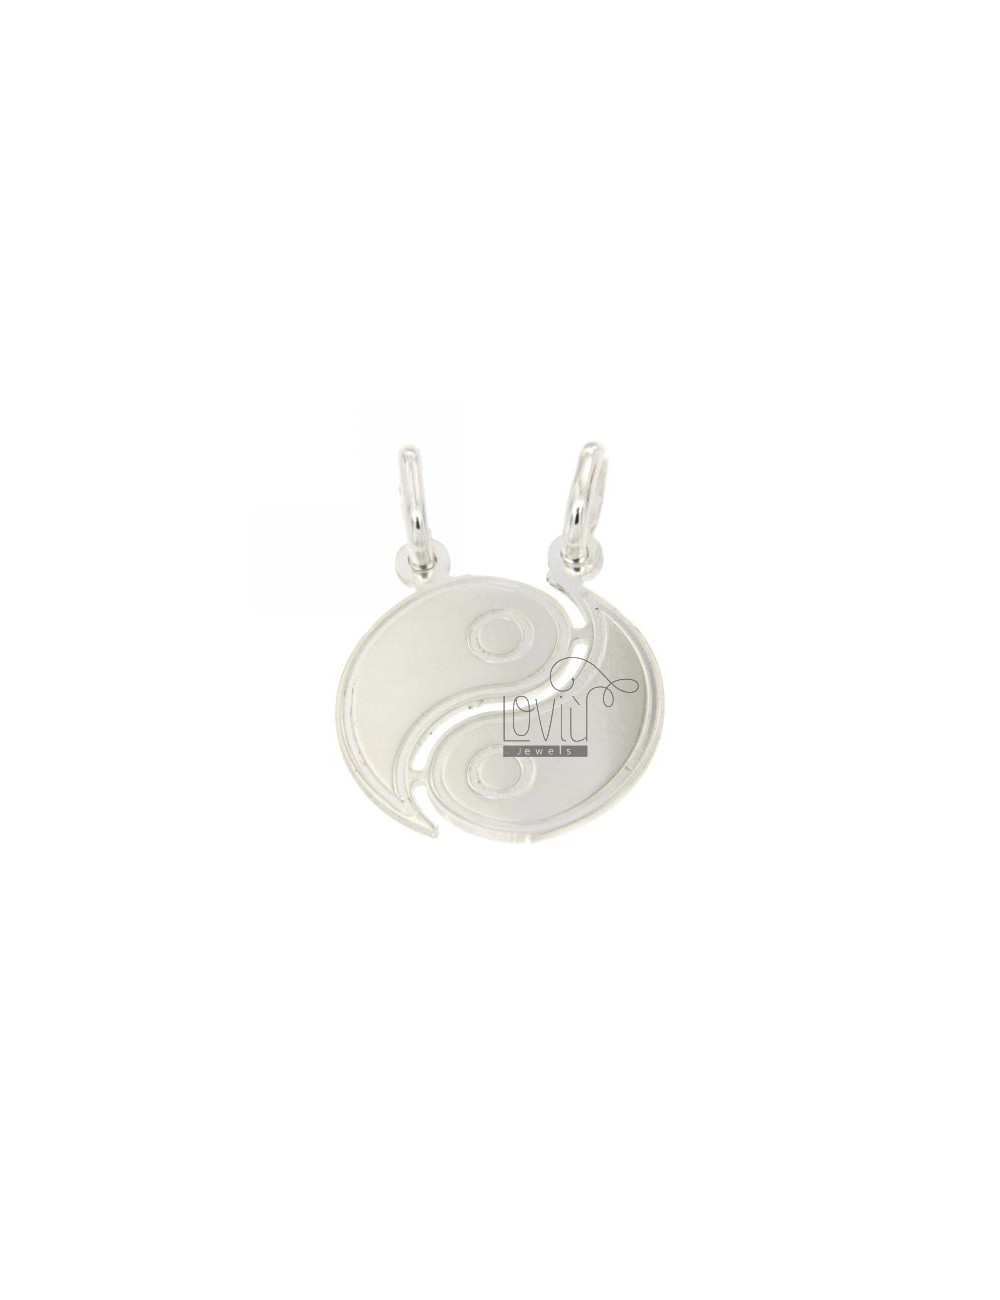 PENDANT GOOD AND EVIL DIVIDED IN SILVER 925 ‰